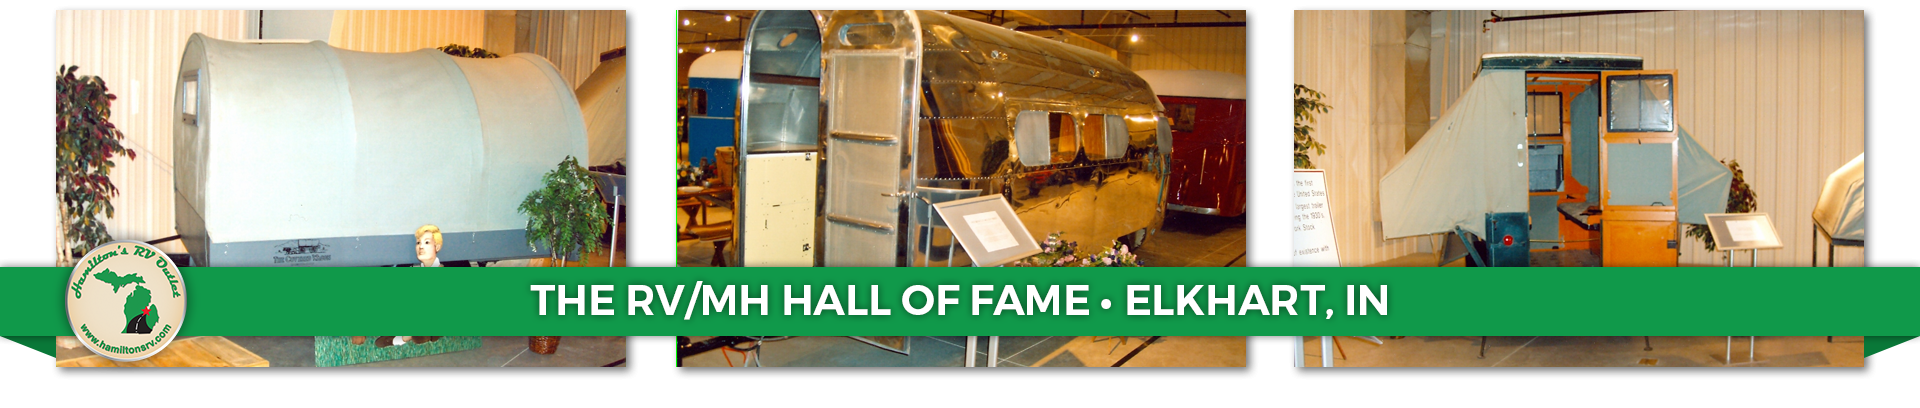 Hall of Fame RV MH